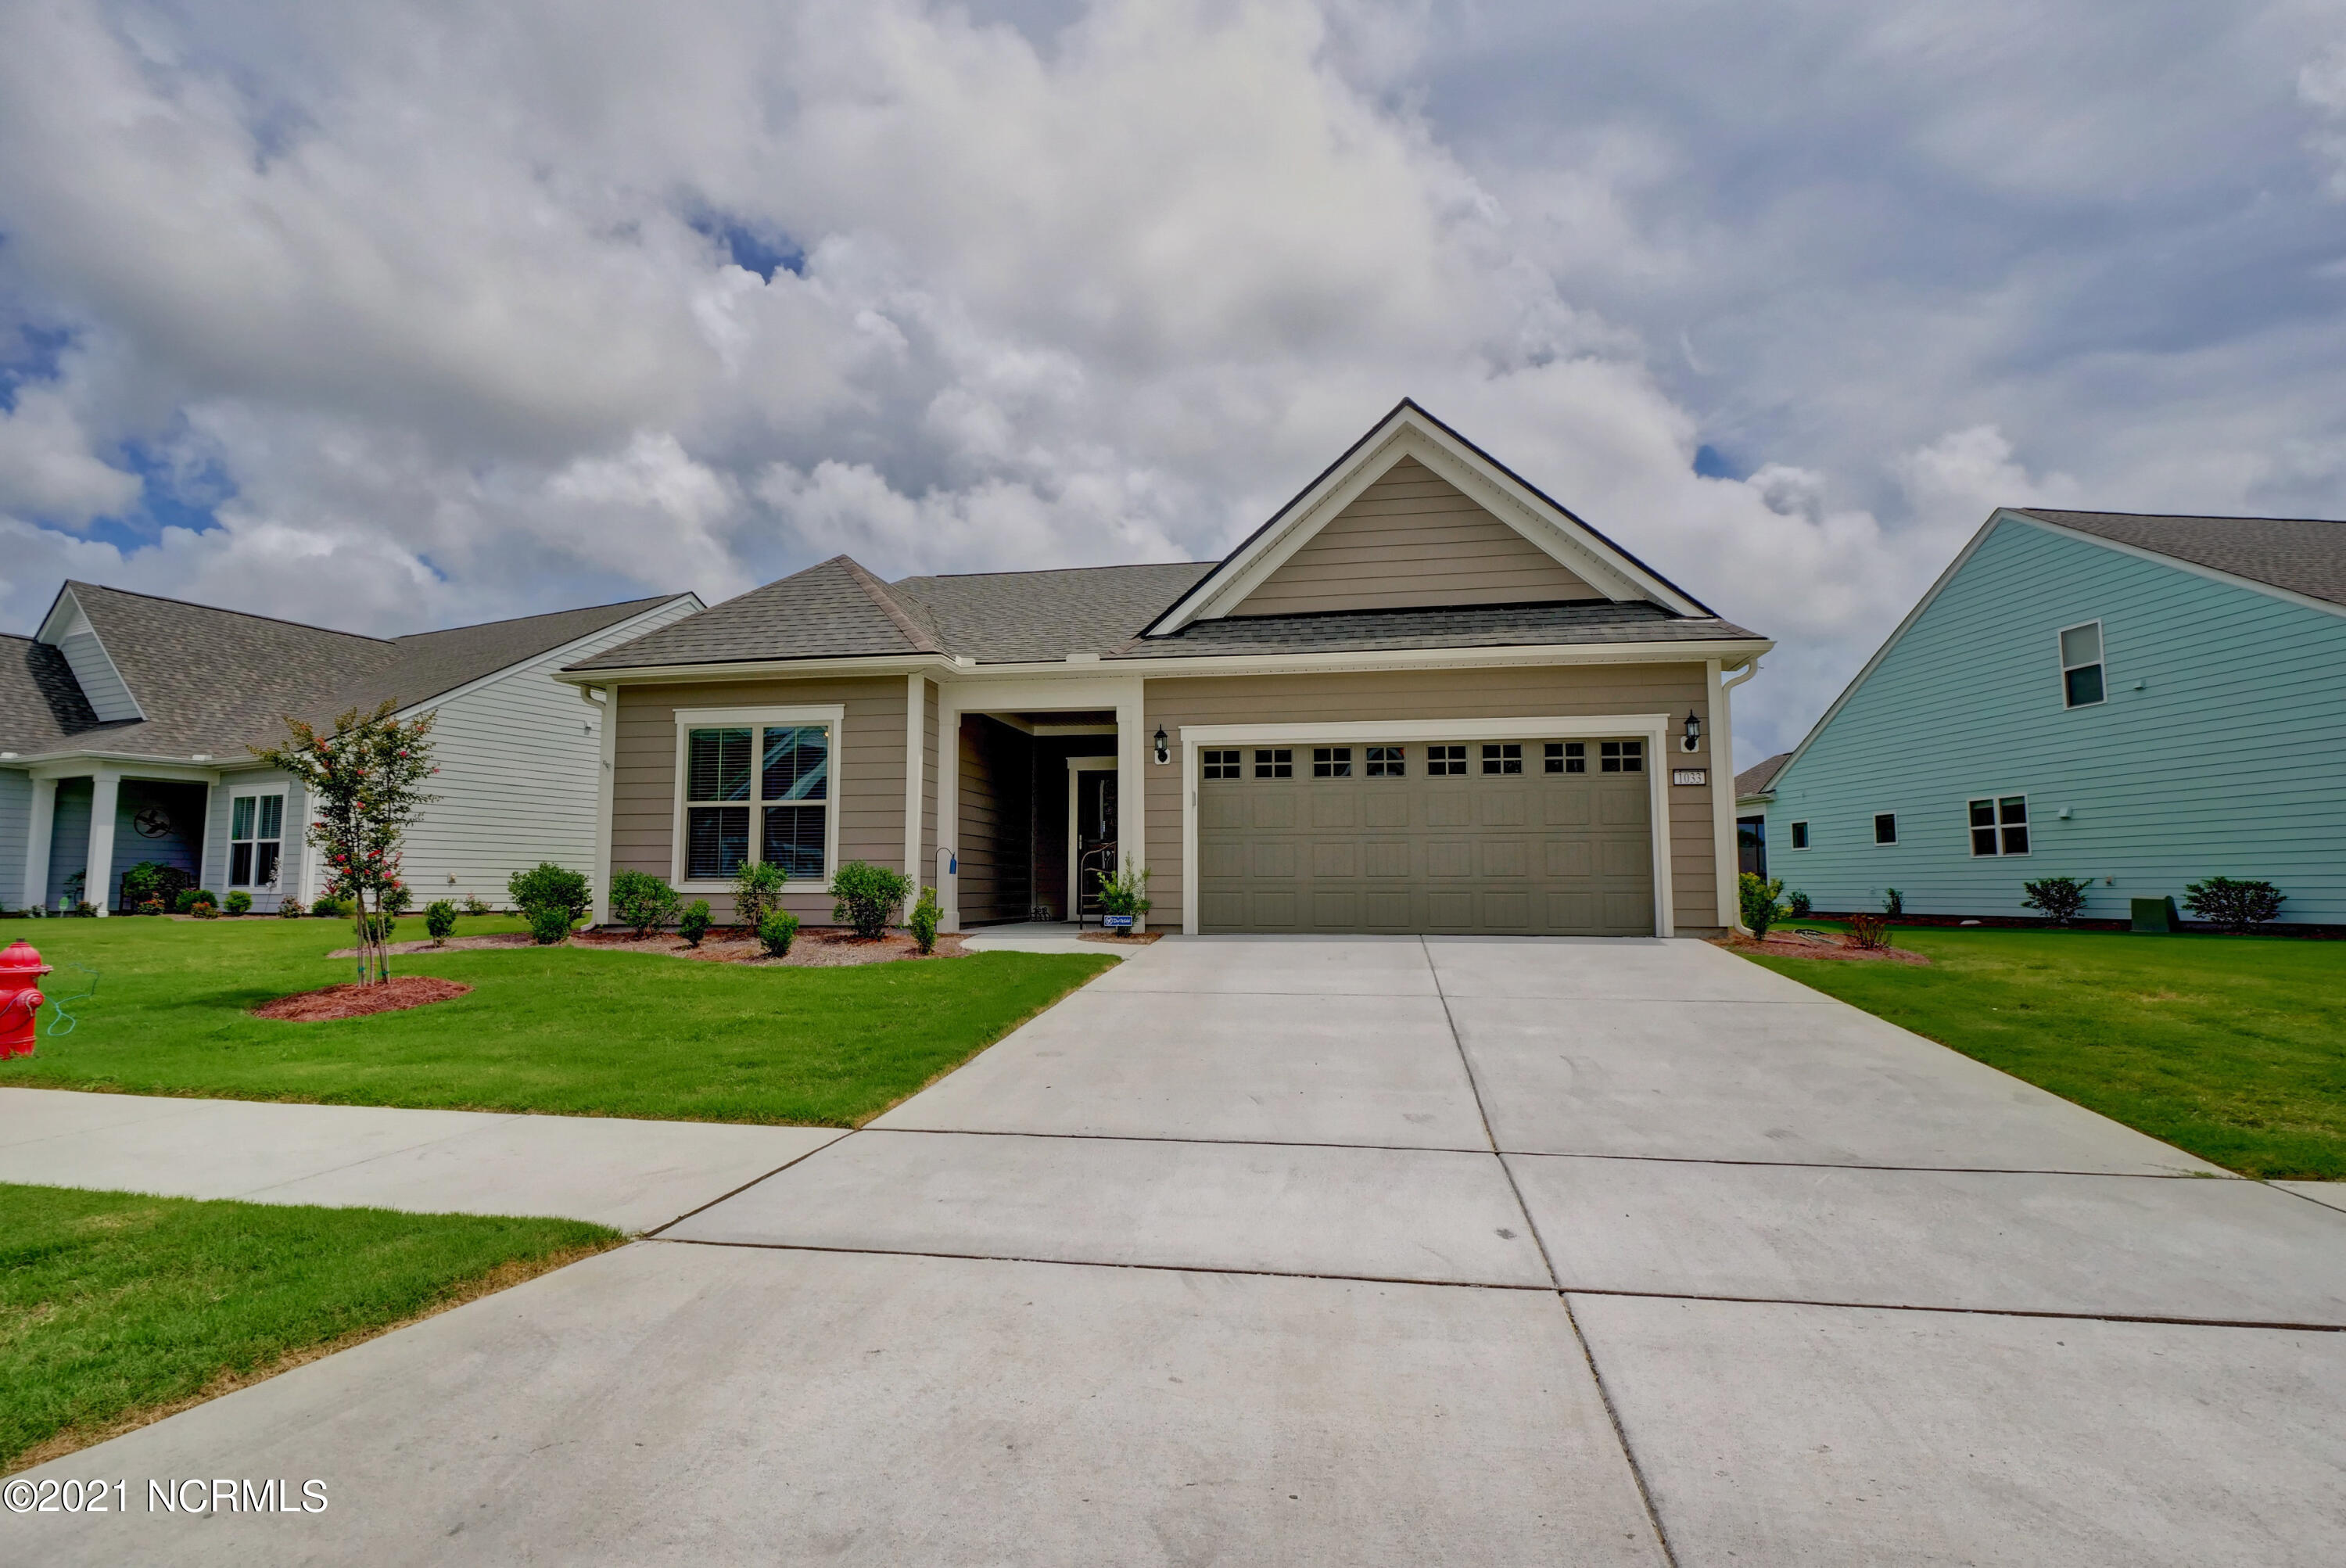 1033 Snowden Road, Wilmington, North Carolina 28412, 3 Bedrooms Bedrooms, 7 Rooms Rooms,2 BathroomsBathrooms,Single family residence,For sale,Snowden,100284838